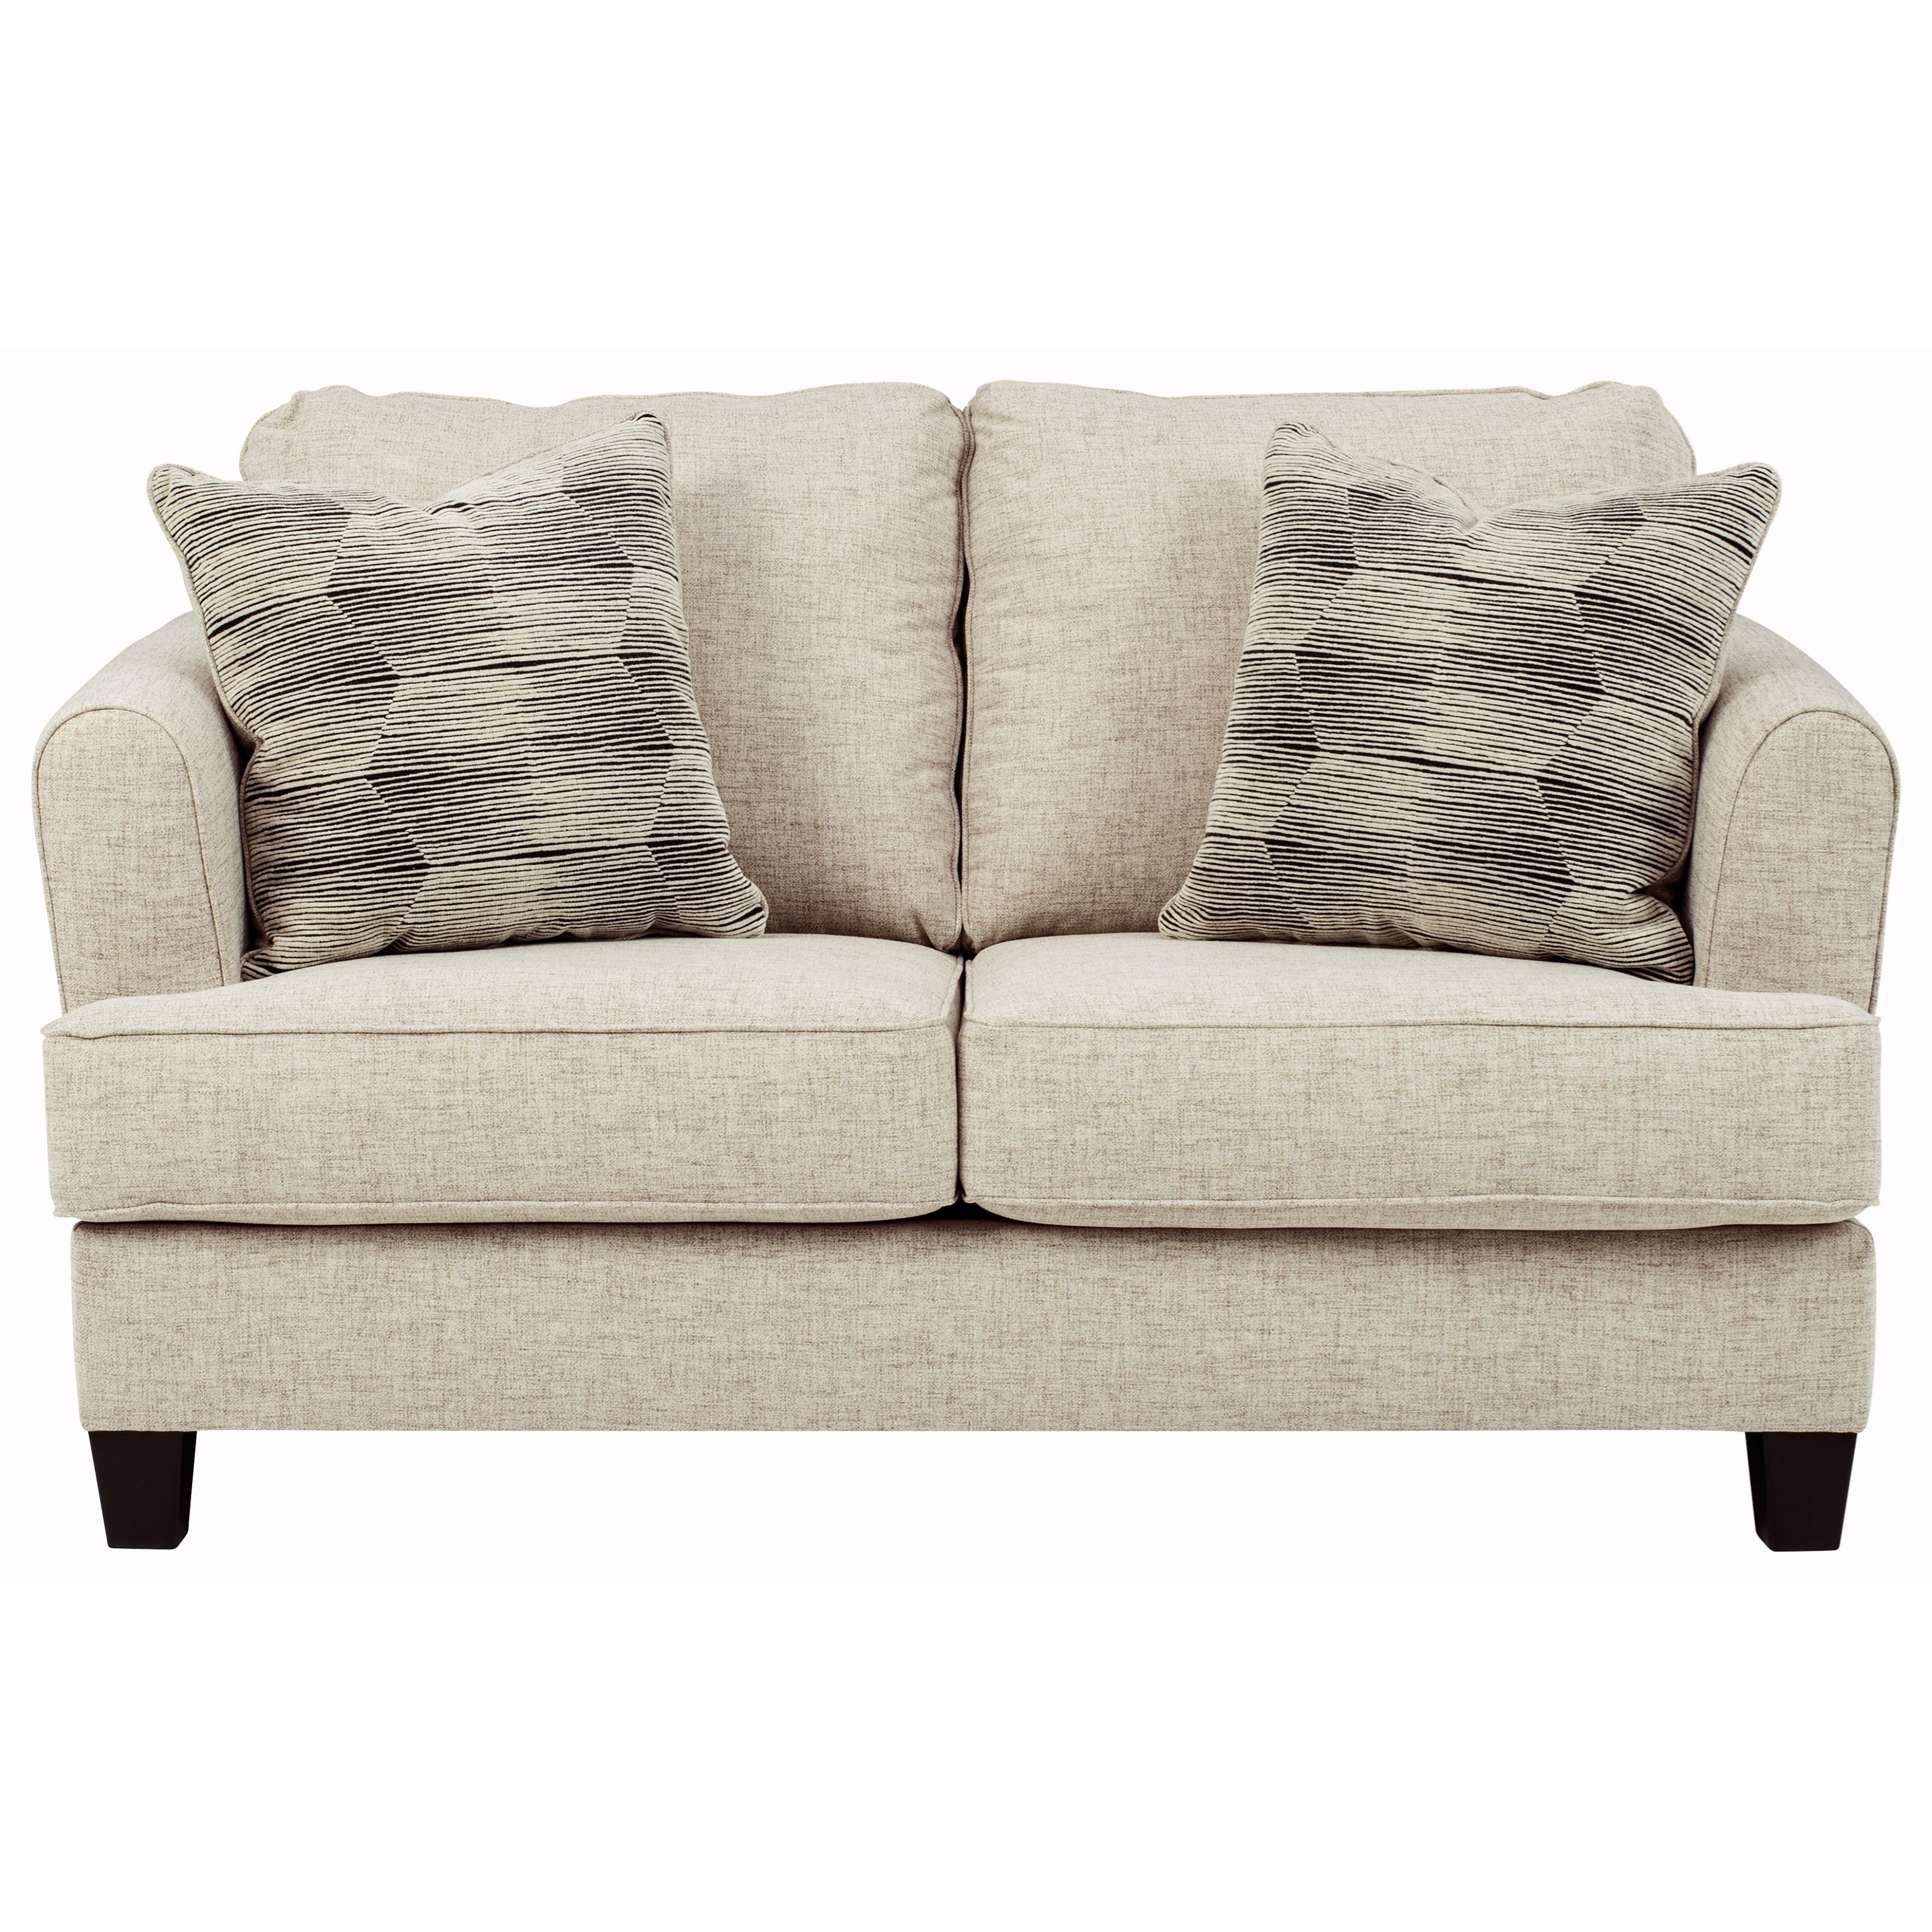 Callisburg Loveseat by Benchcraft at Miller Waldrop Furniture and Decor